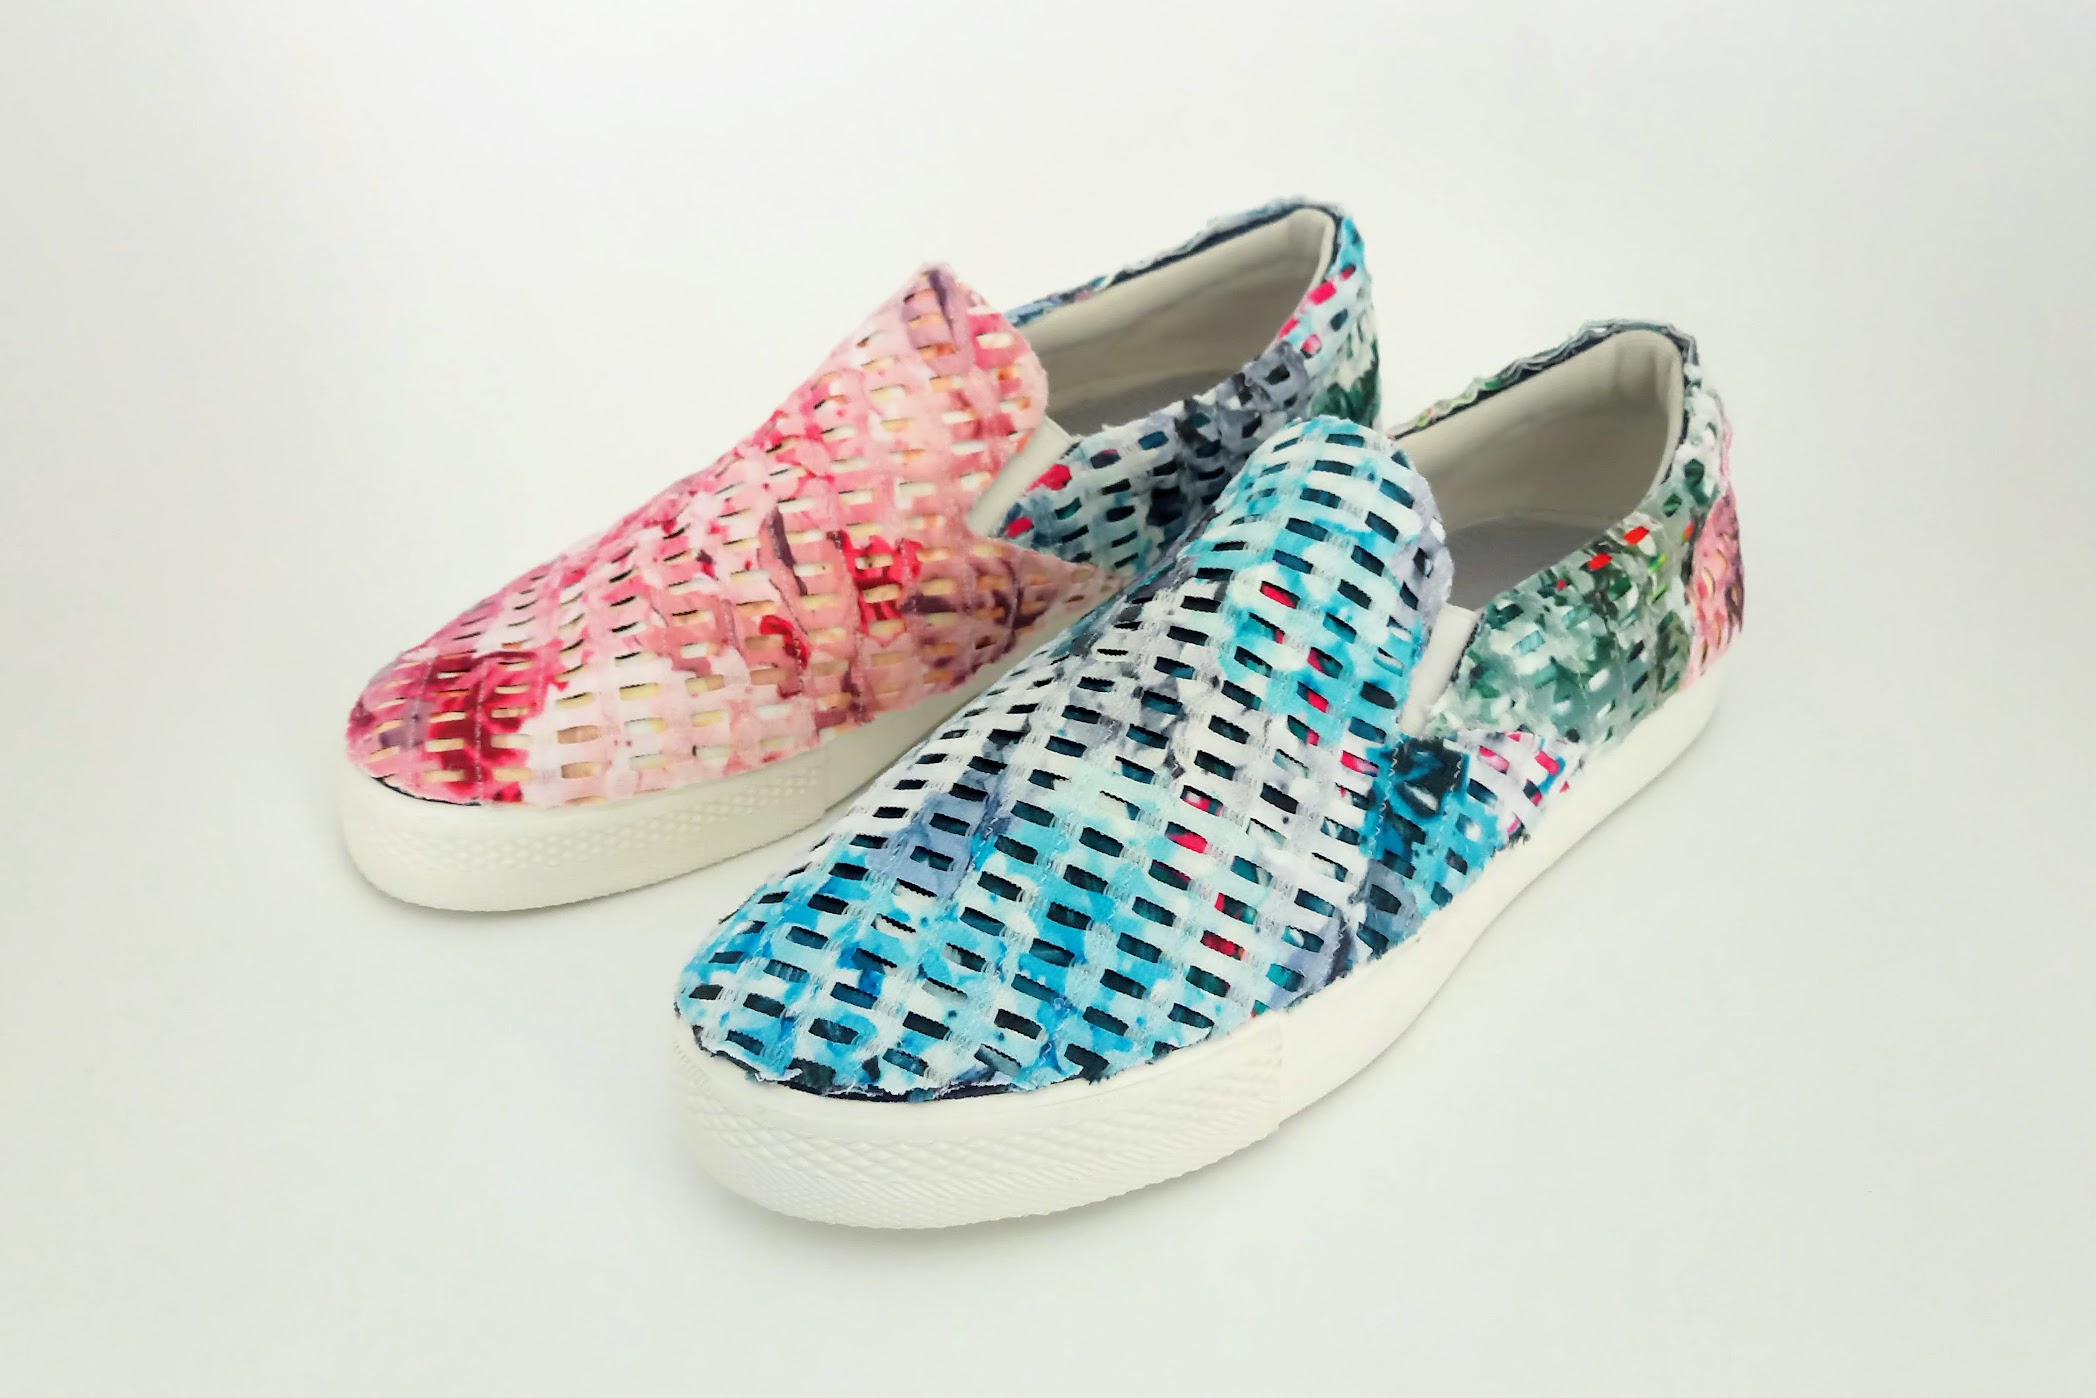 Fabric Collage Shoes - DIY Fashion project | fafafoom.com